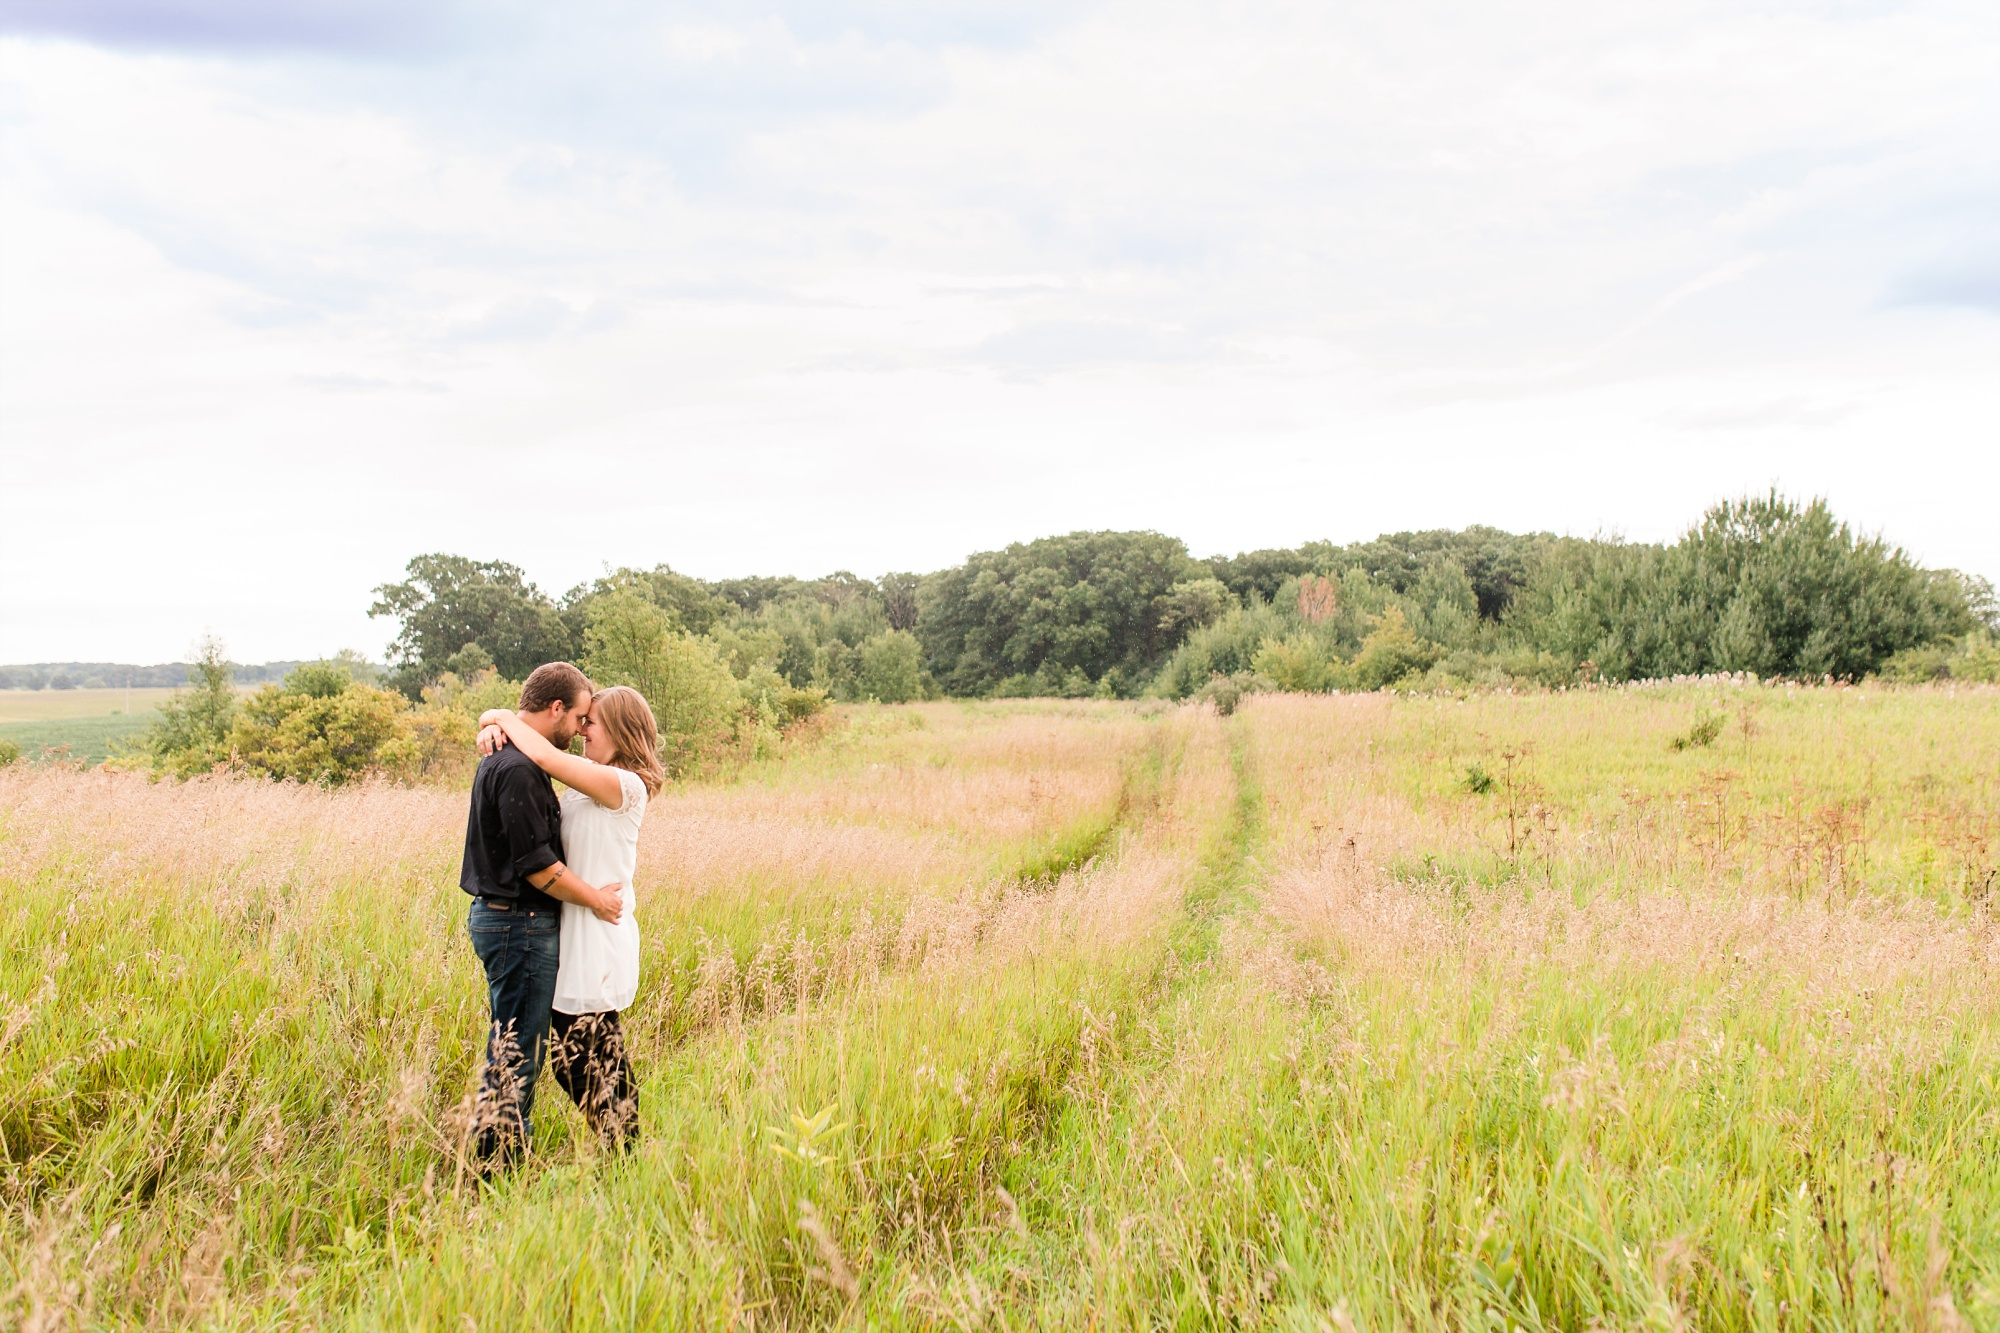 AmberLangerudPhotography_Countryside Engagement Session in Minnesota_3091.jpg